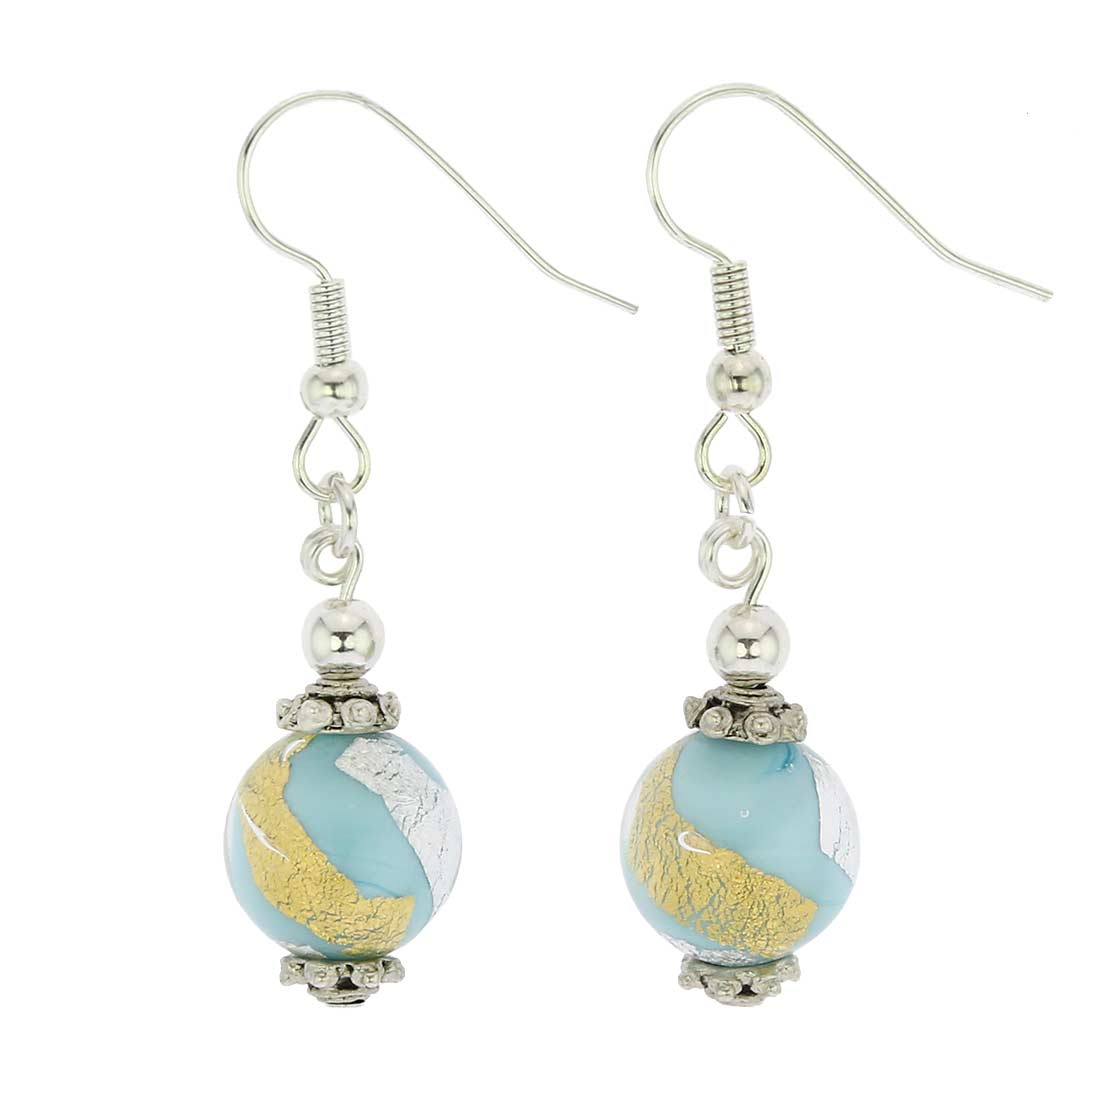 Antico Tesoro Balls Earrings - Turquoise Gold and Silver